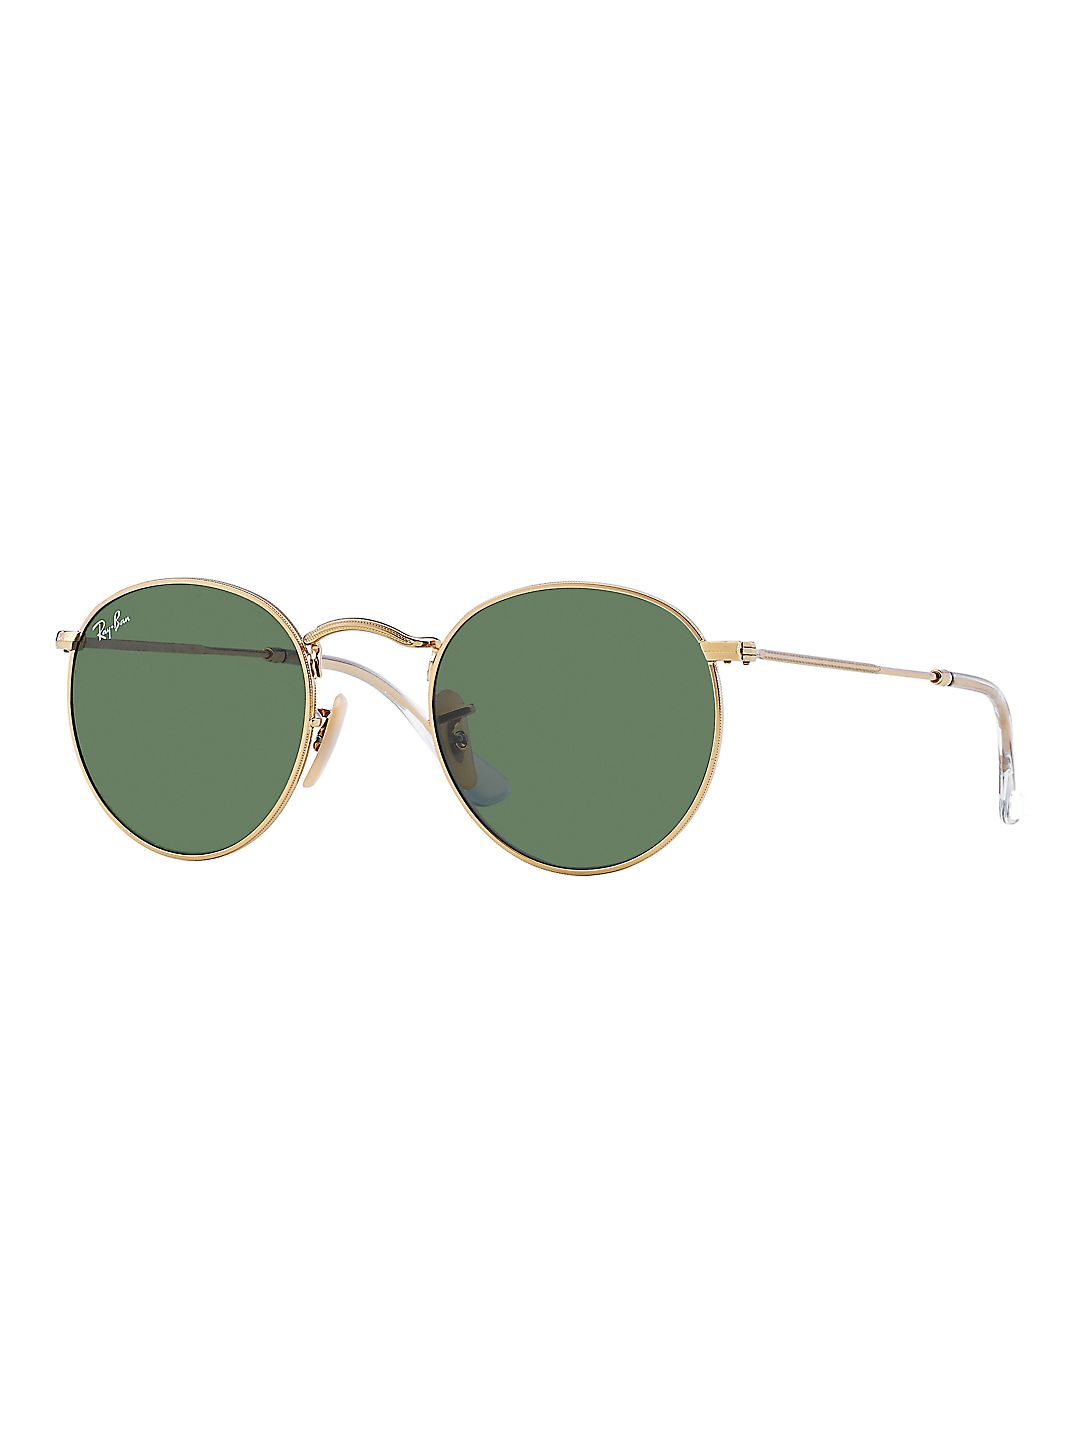 Ray-Ban Unisex RB3447 Round Metal Sunglasses, 50mm